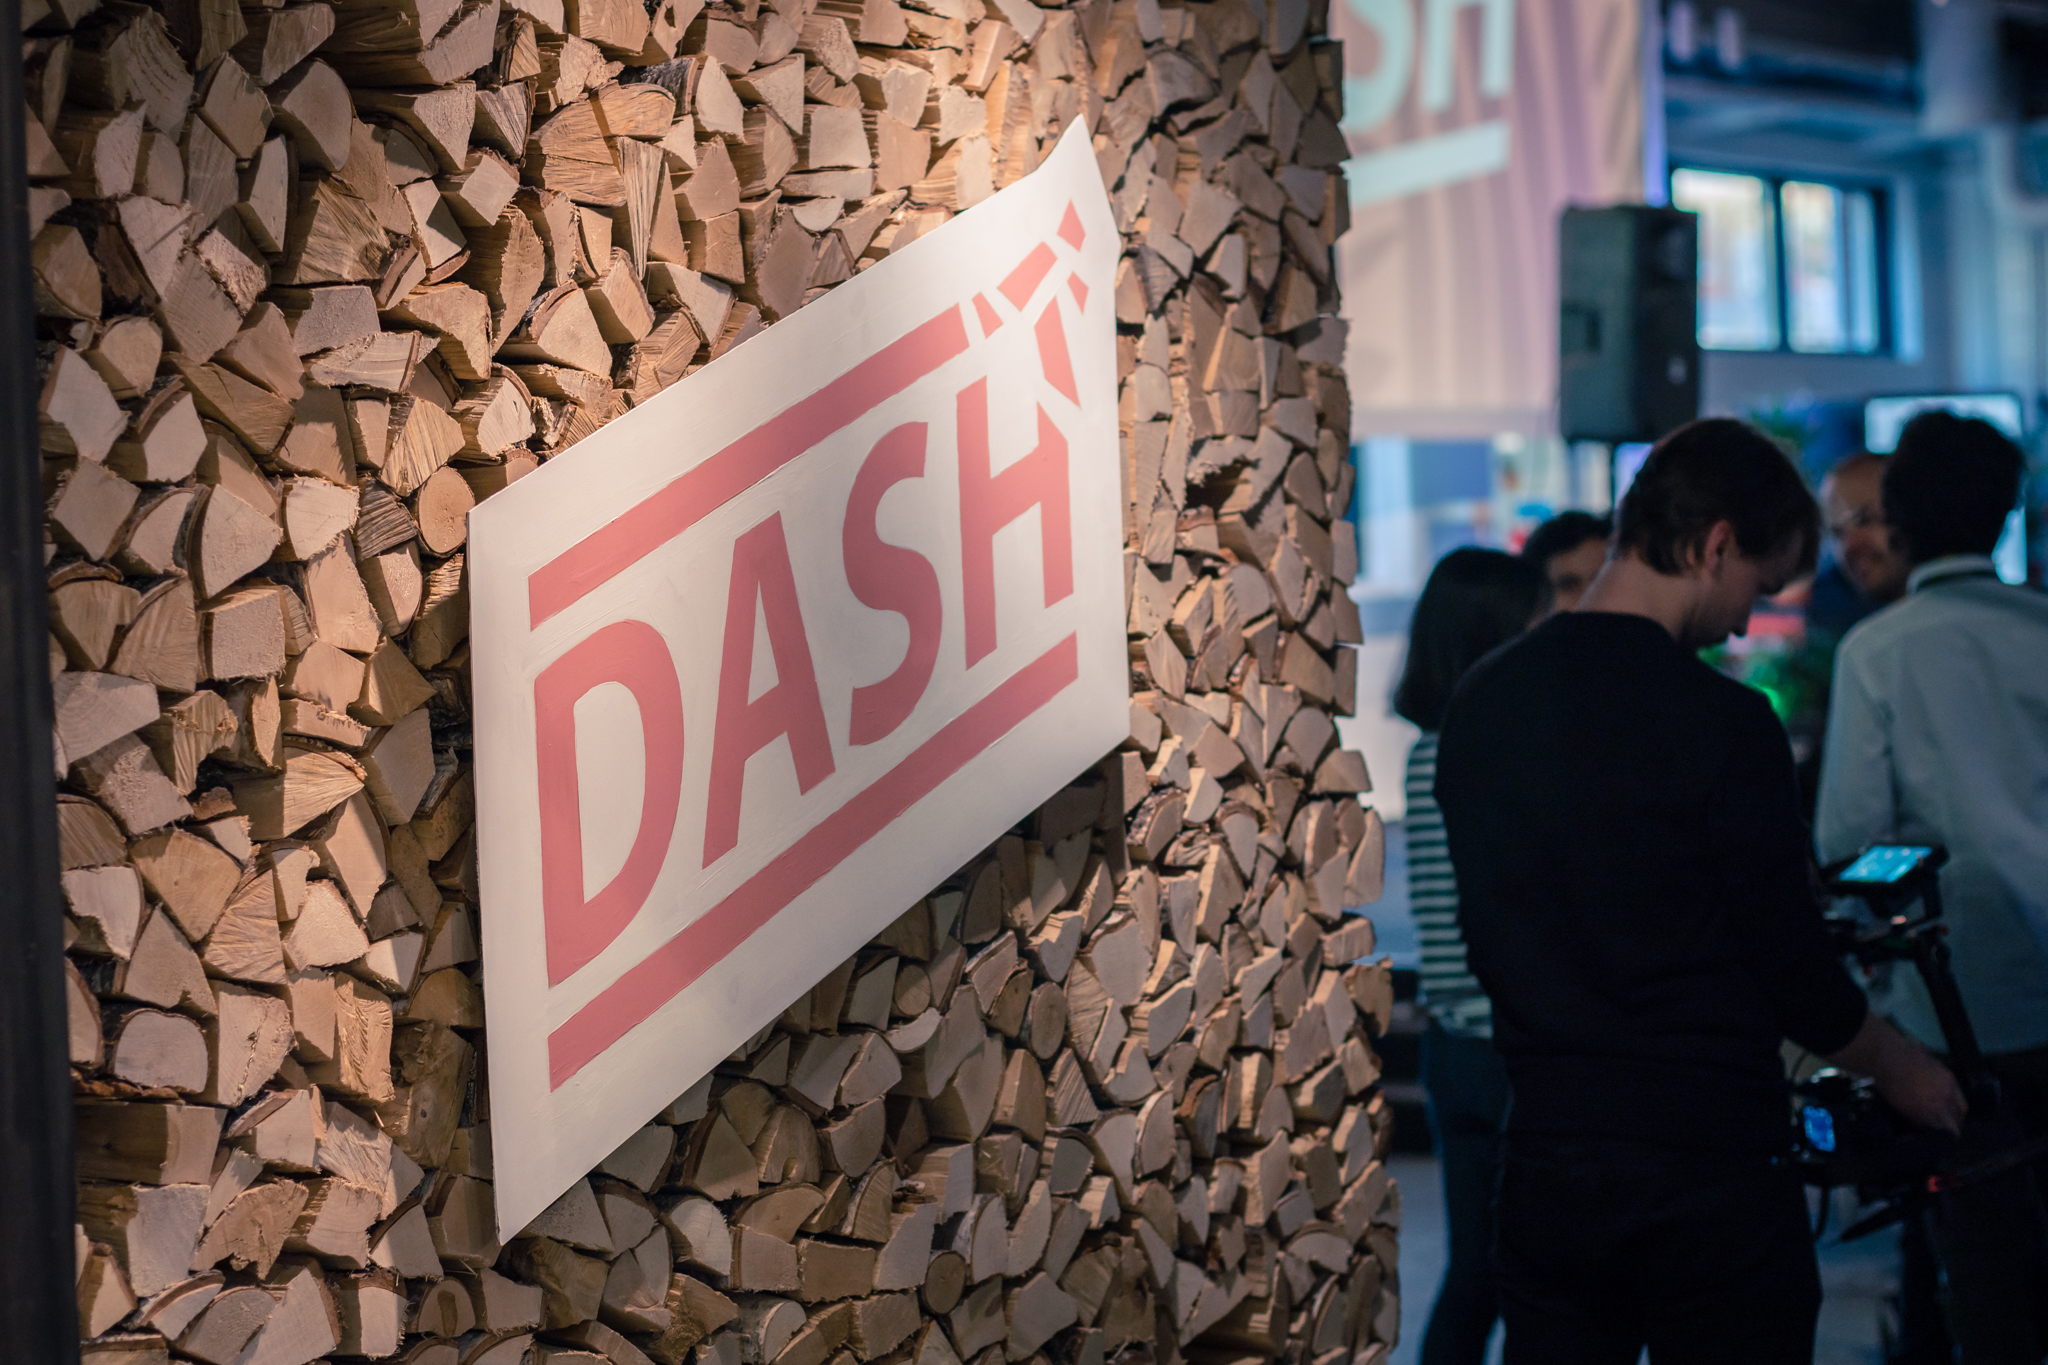 """One of the most frequently asked questions I get regarding Dash is """"what is it like to participate, is it just pöhinä?"""" There was a time when the biggest compliment you could get as an entrepreneur was to have """"hyvä pöhinä, good pöhinä"""" around your business. However, what's even more vital is achieving results, evidence of real progress, which are something buzz or pöhinä cannot solely provide."""